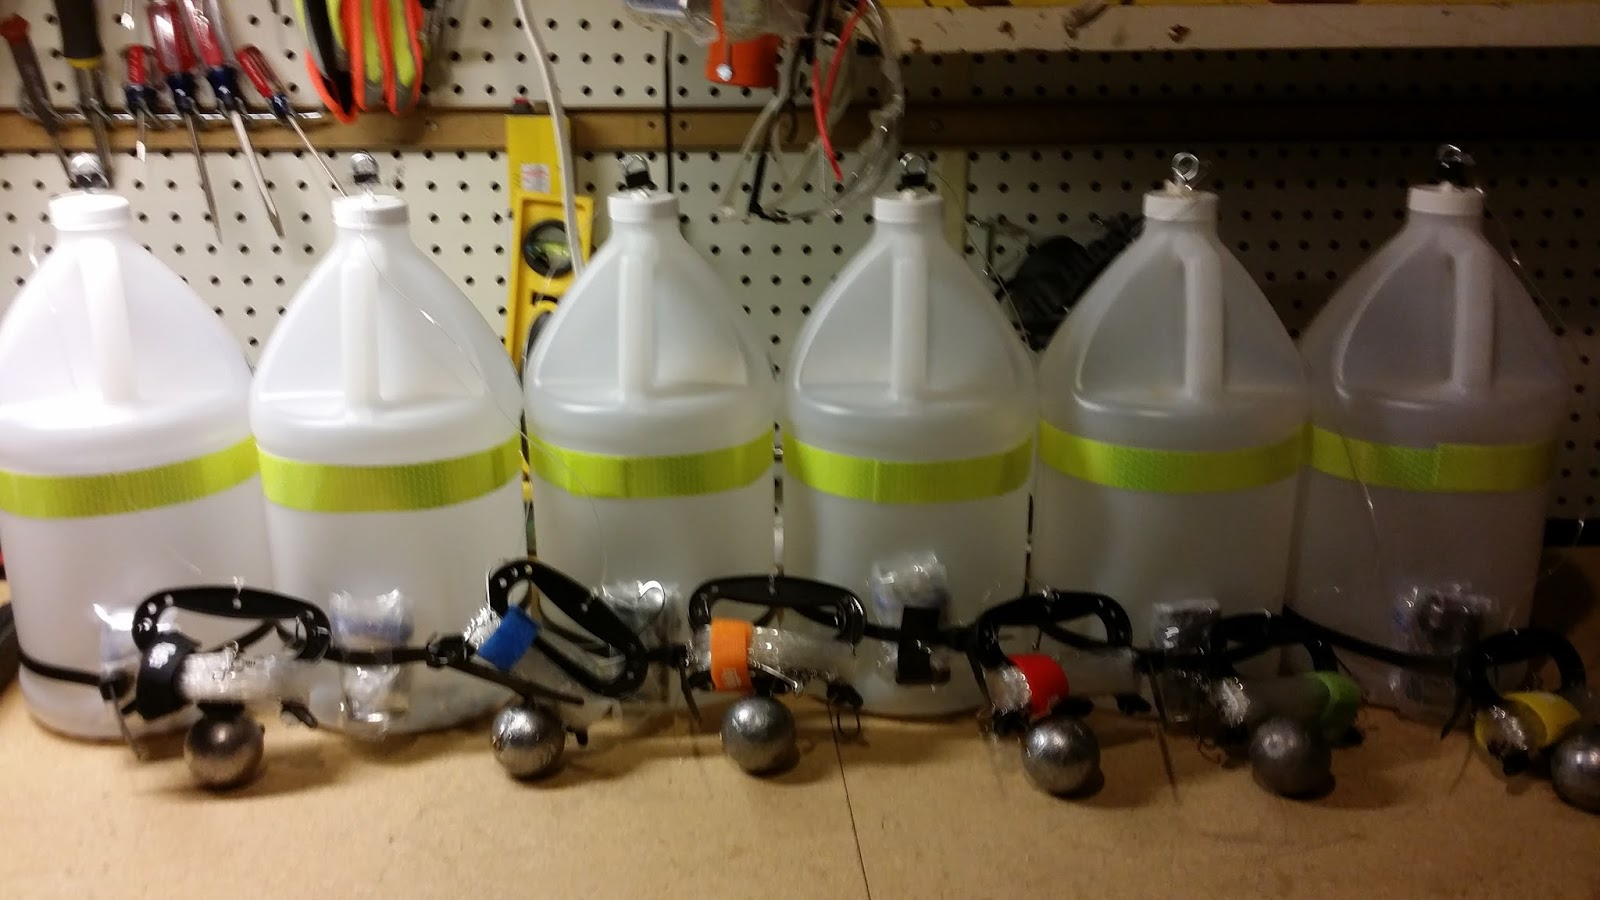 There S The Fleet Of All Six Of Them Ready To Deploy They All Have Working Lights The Weights Are On Them And The Hooks Are Set At Around 4 5 Feet Apart